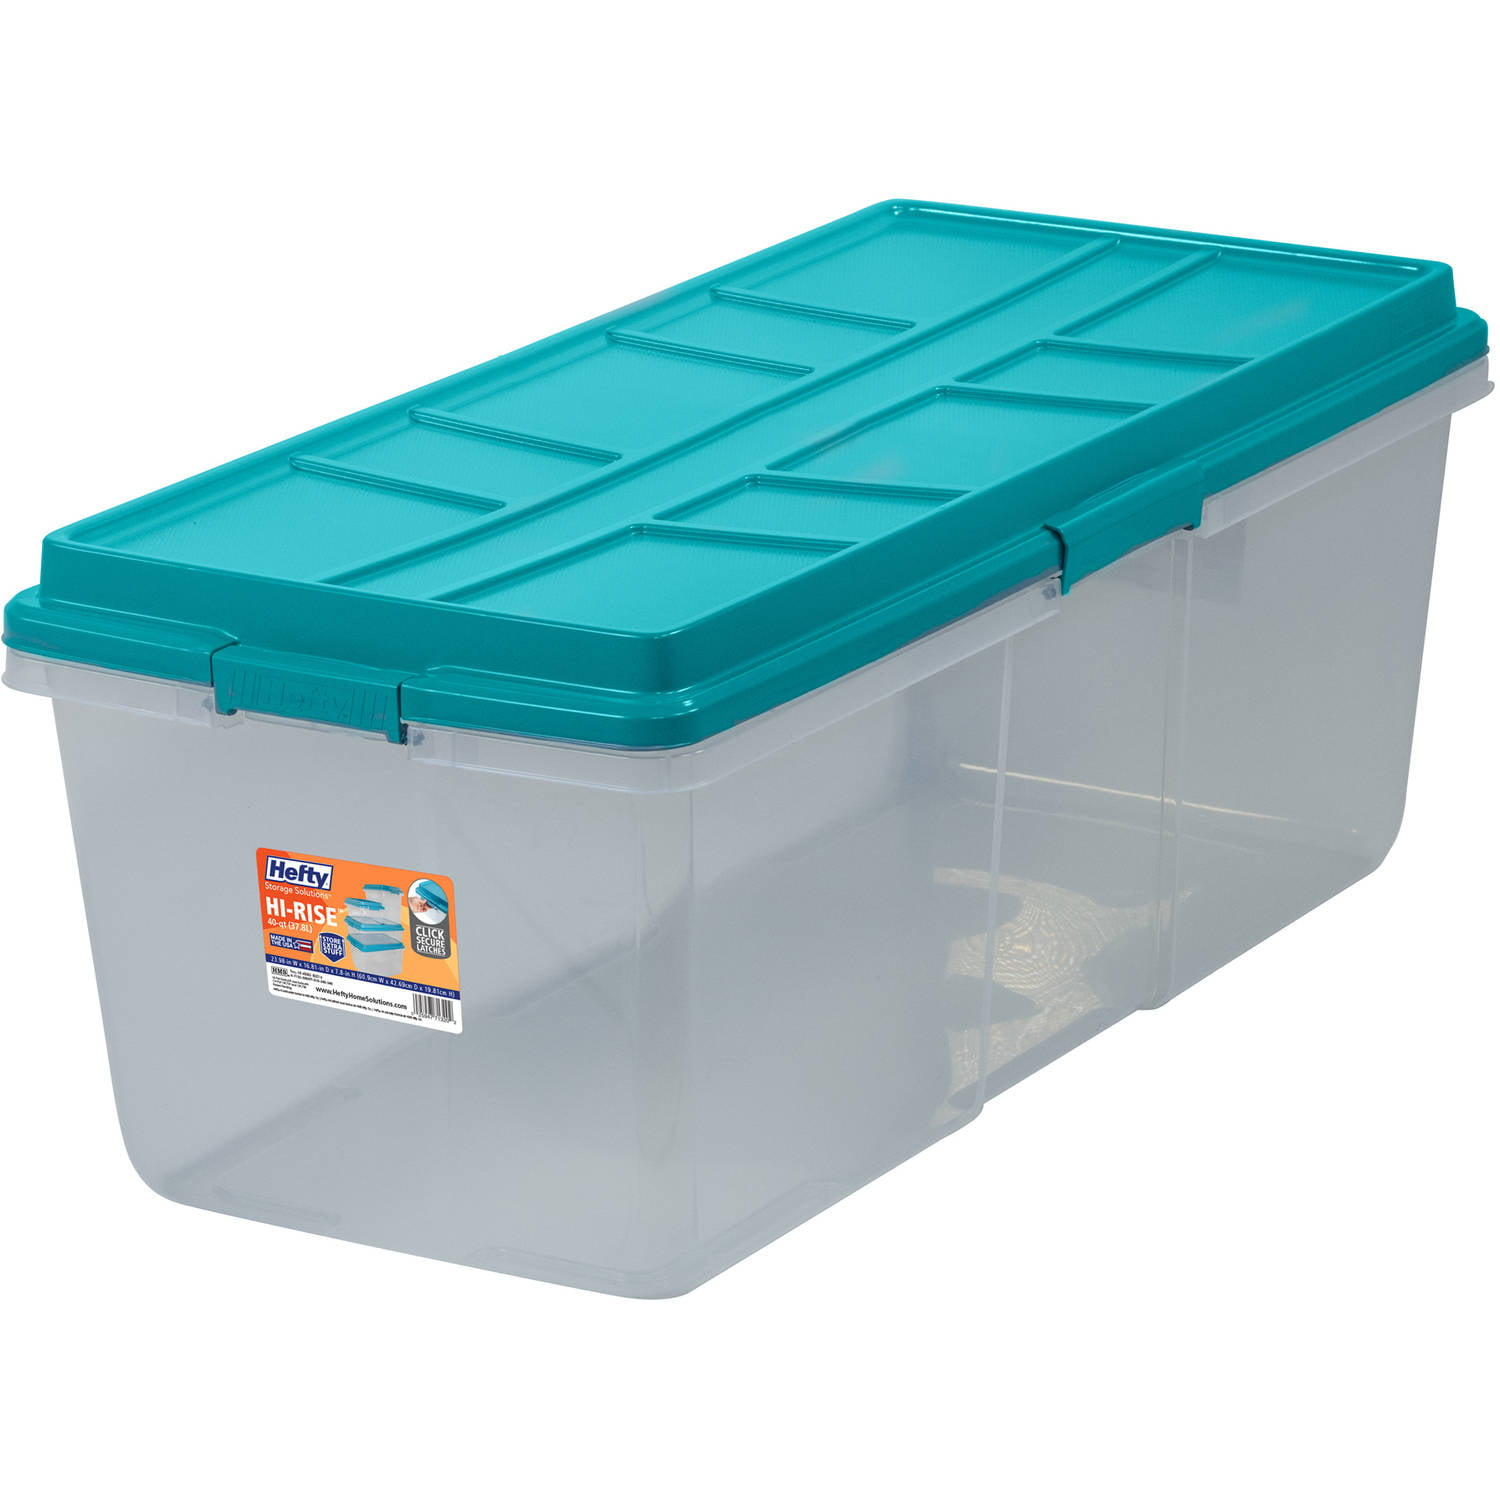 Beau HI RISE Storage Bins, 113 Qt. XL Stackable Bin With Latch, Teal/Clear New